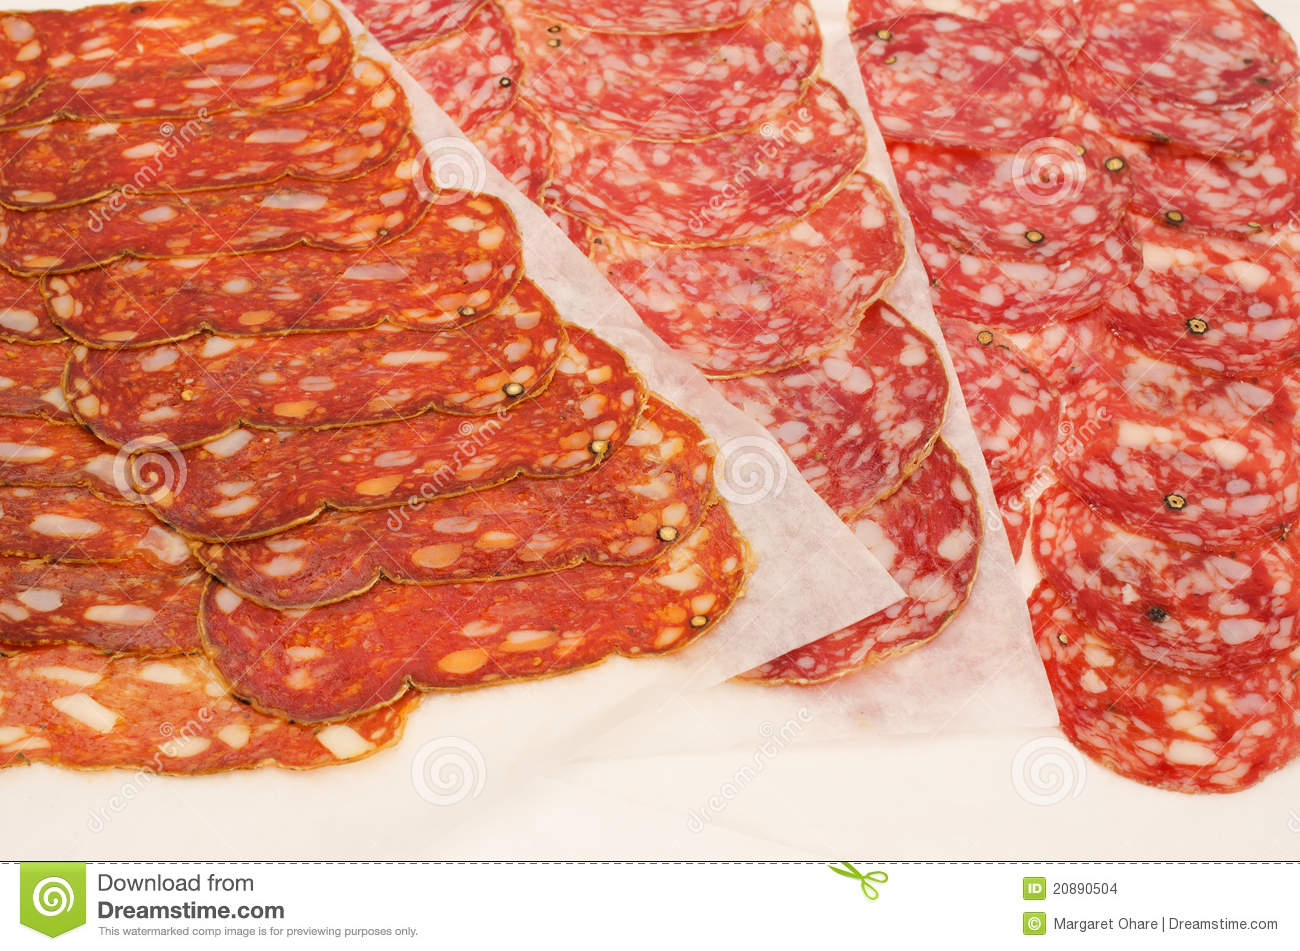 Stock Images Italian Salami Image20890504 on types of ham cold cuts